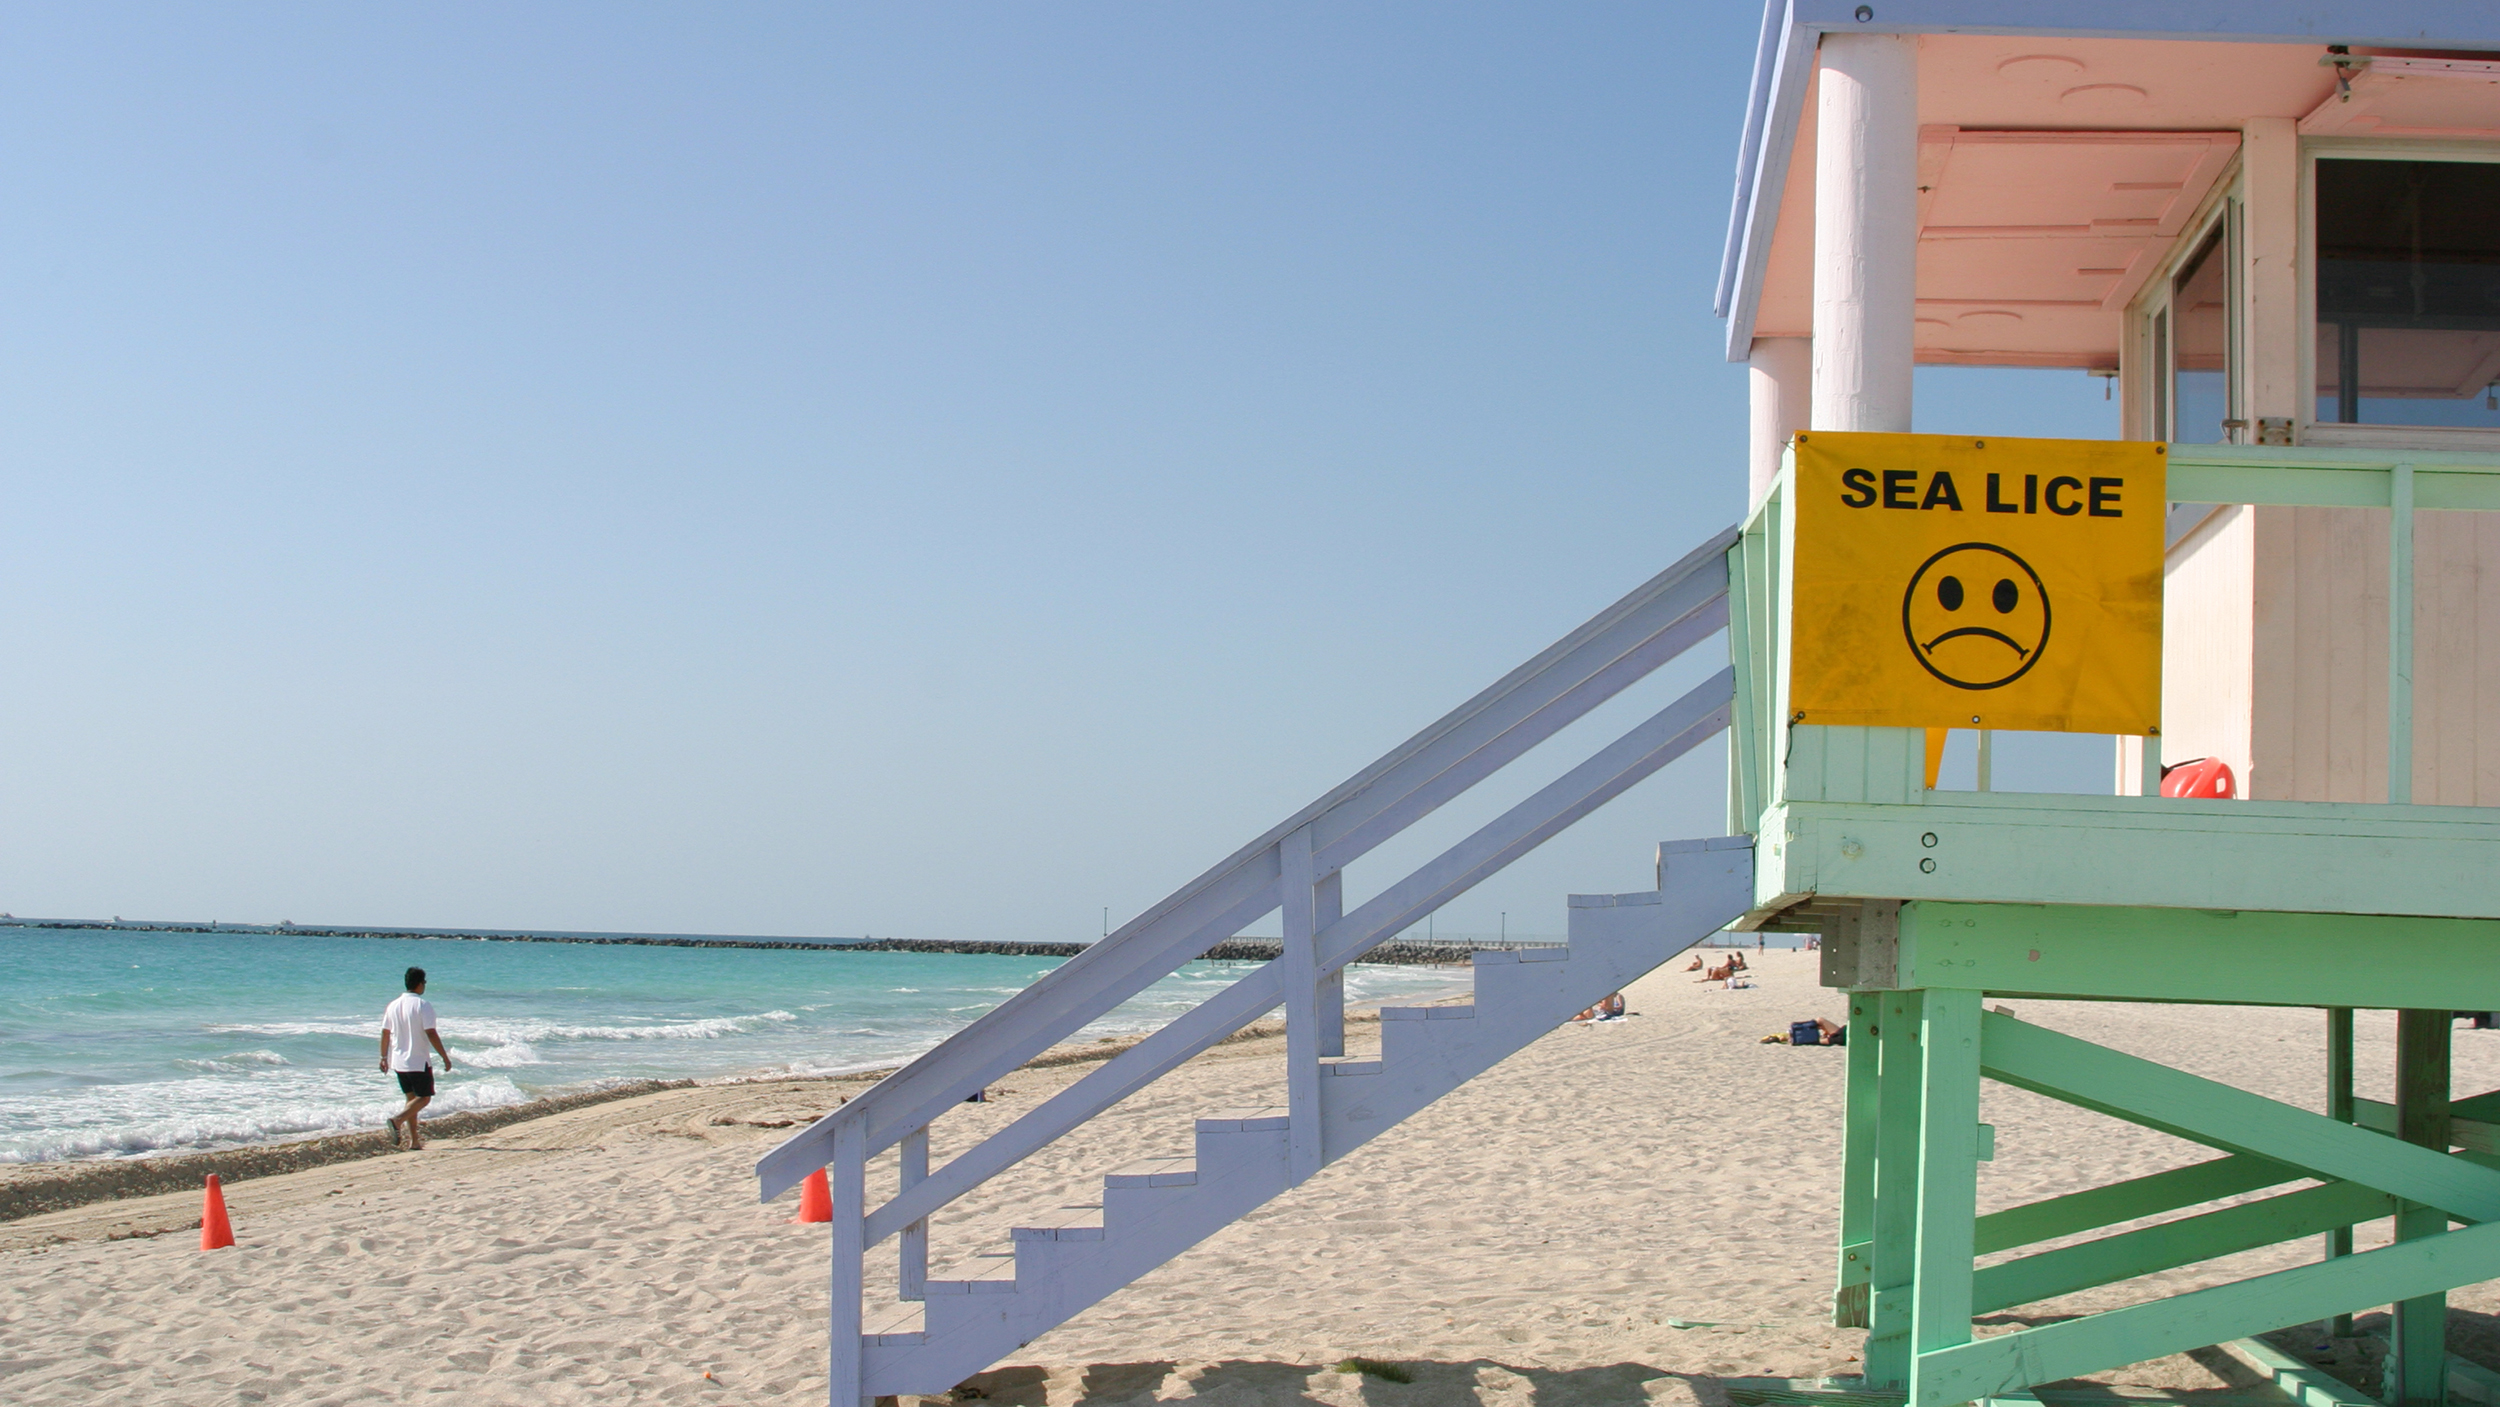 How to avoid sharks, jellyfish and sea lice at the beach